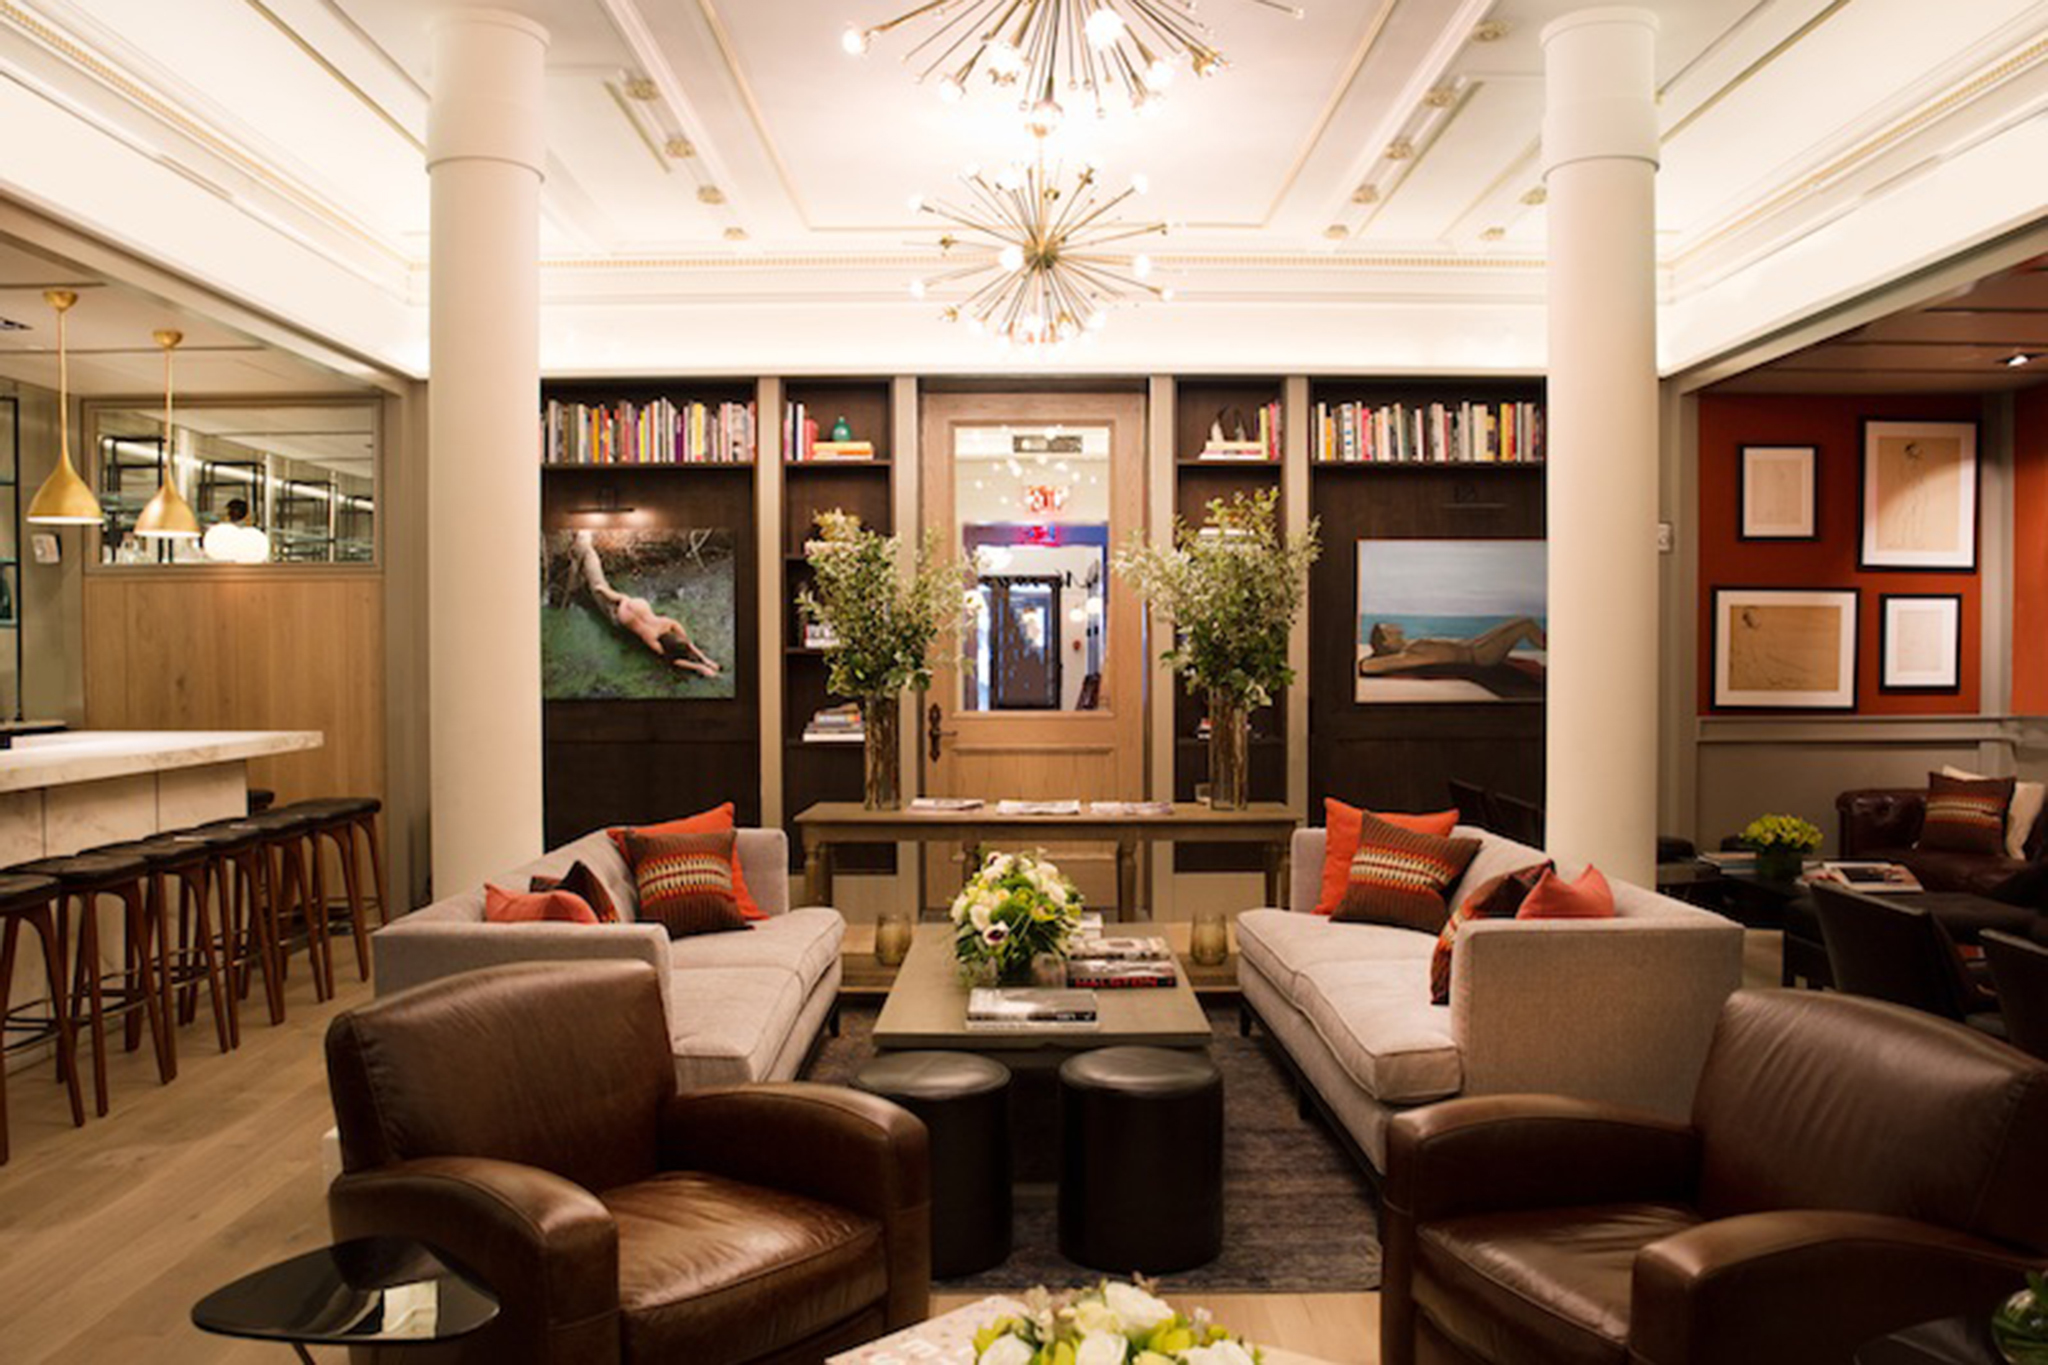 Best hotels near the Empire State Building for a NYC vacation